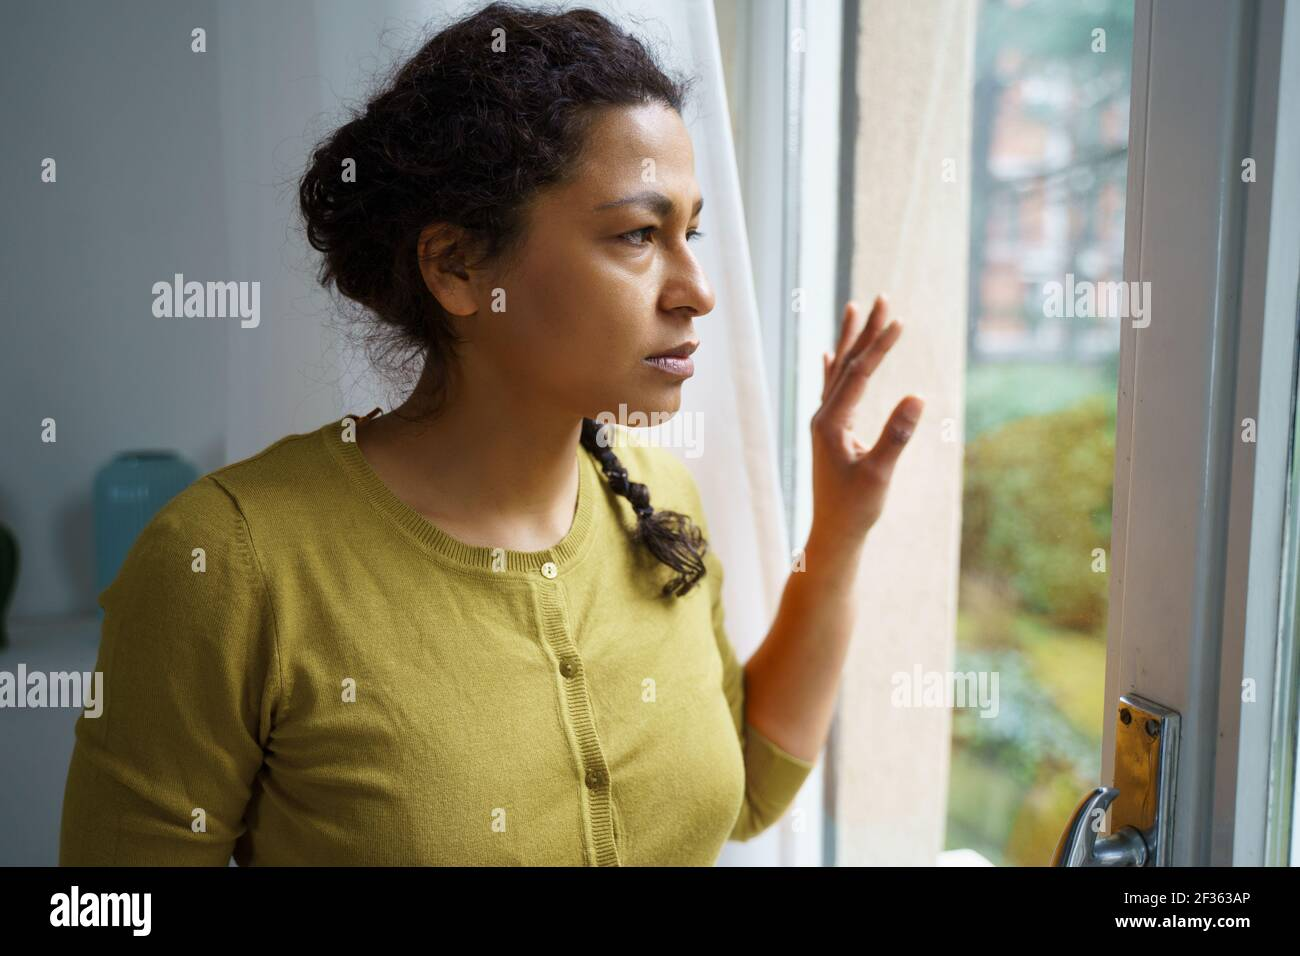 Worried black woman looking out of the window Stock Photo